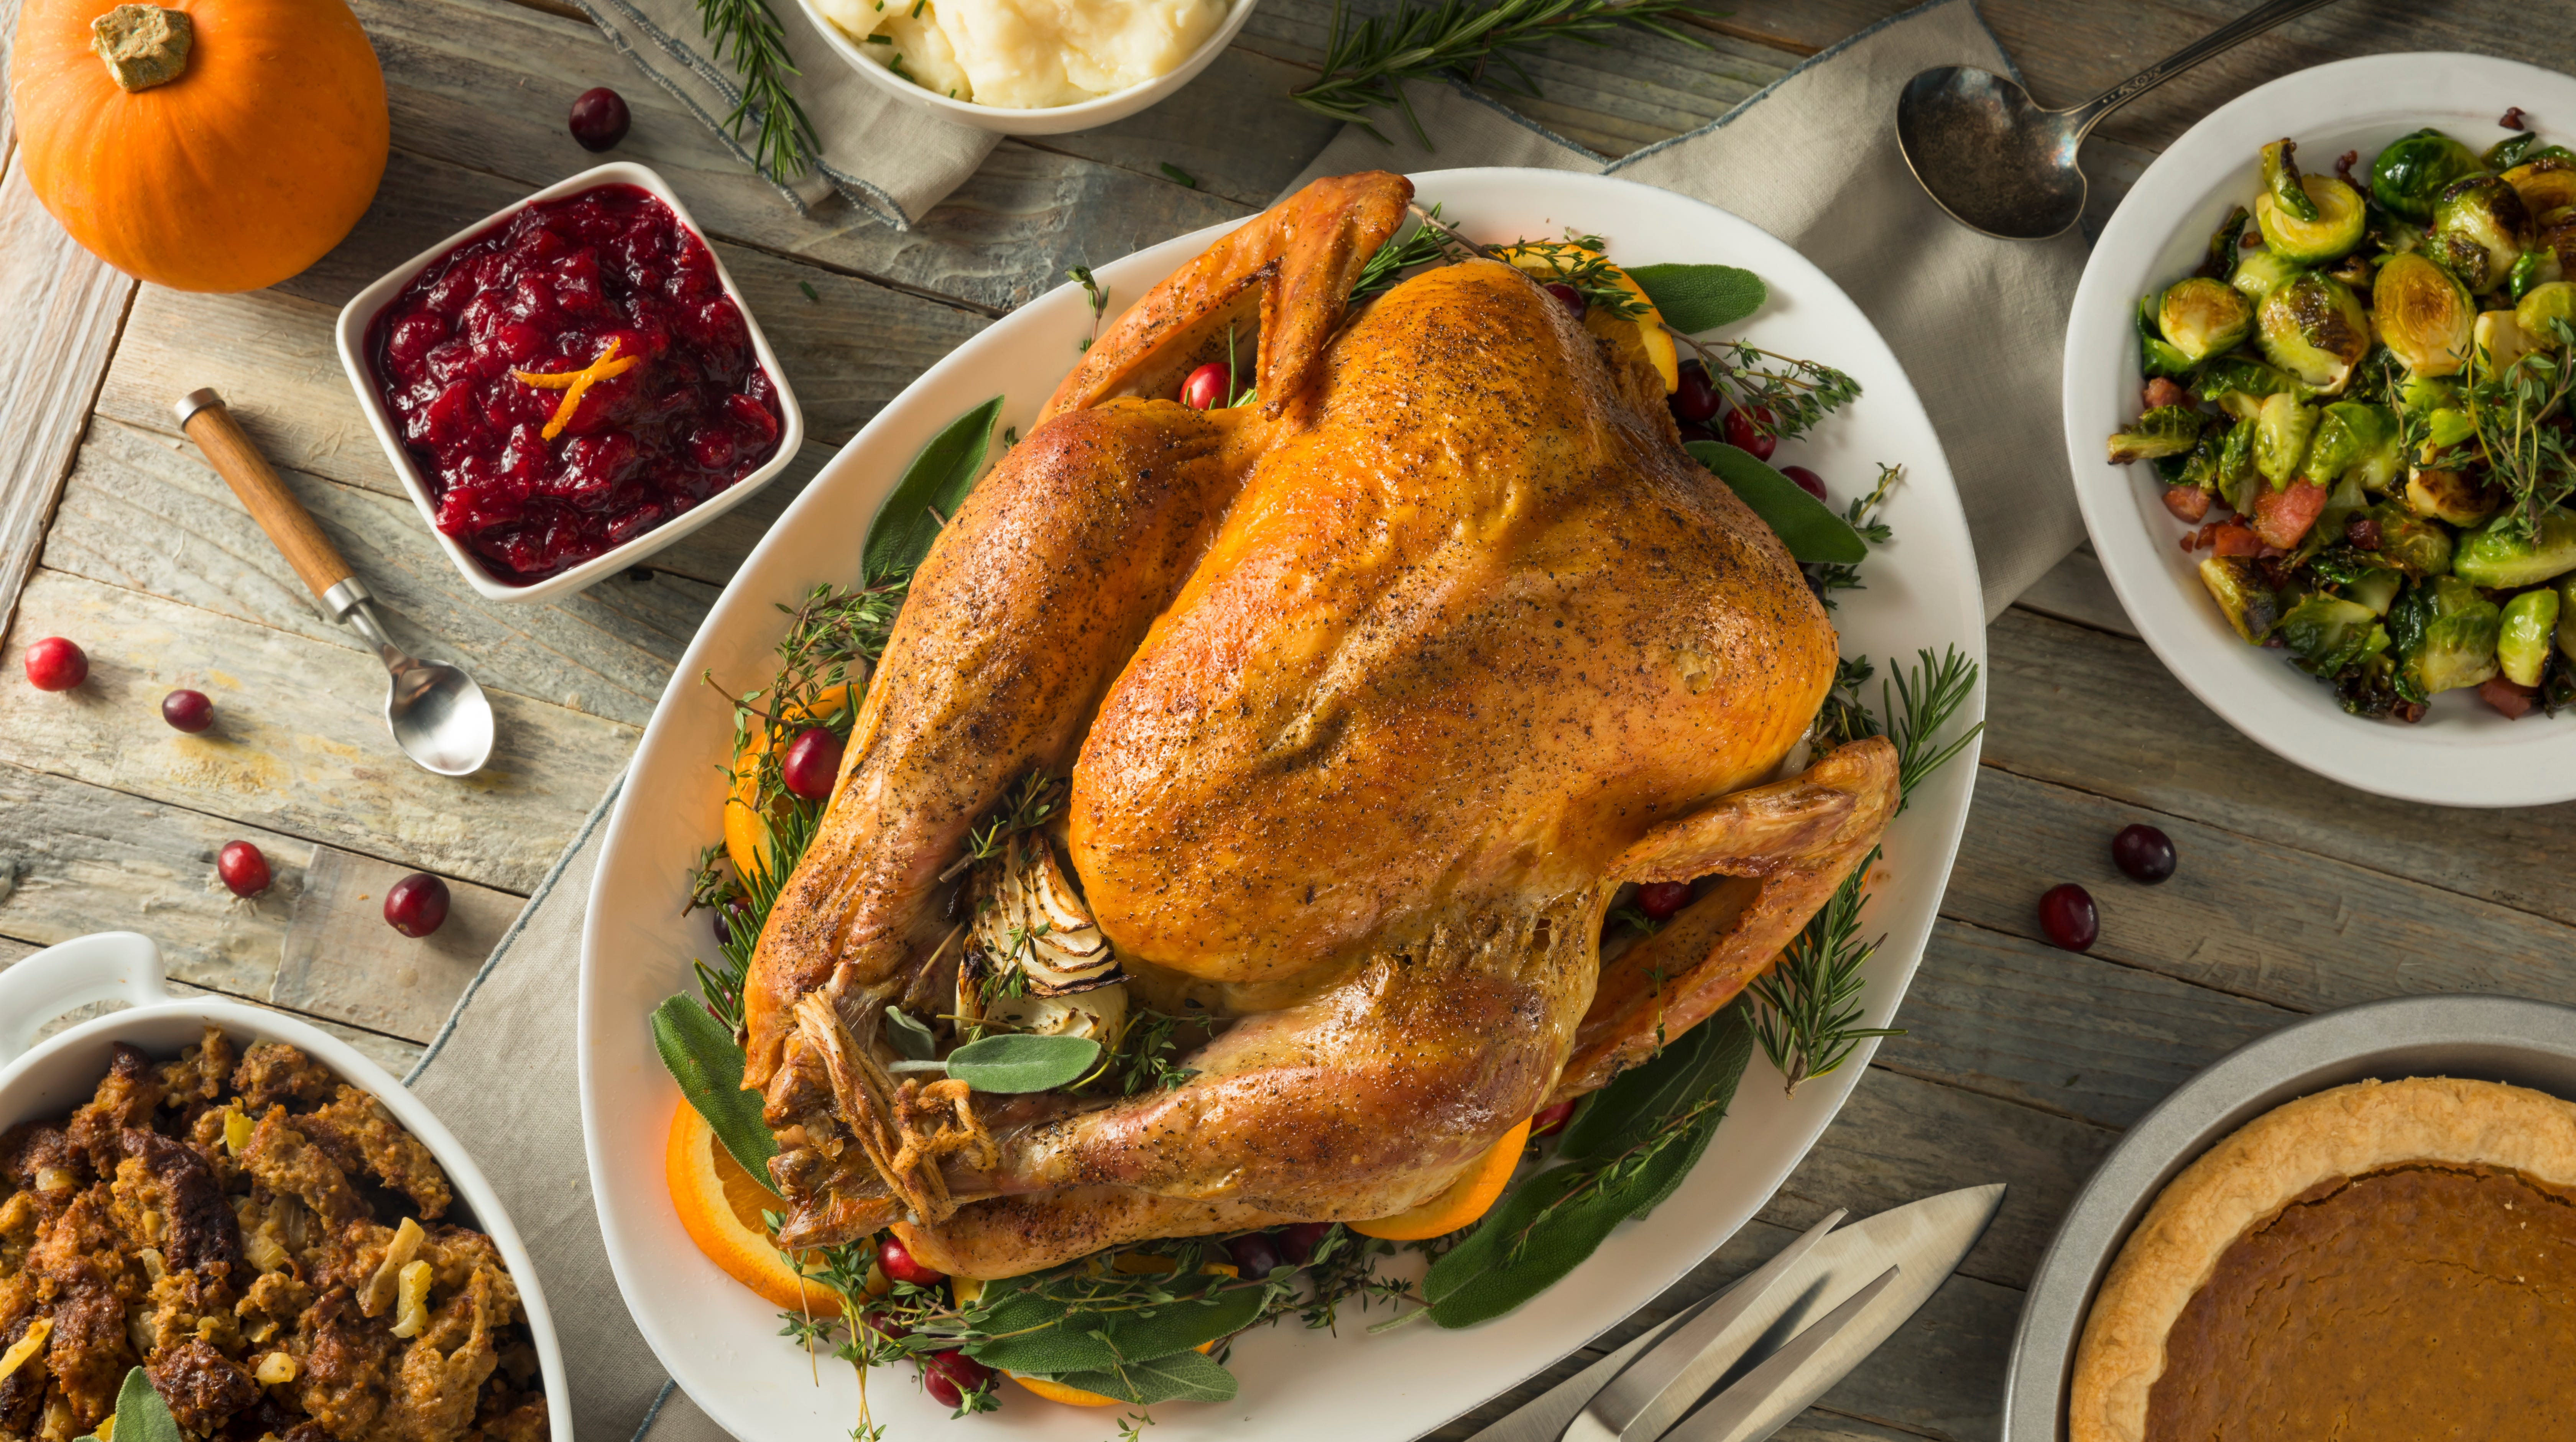 Go ahead and gobble up – the average Thanksgiving dinner costs a bit less than last year